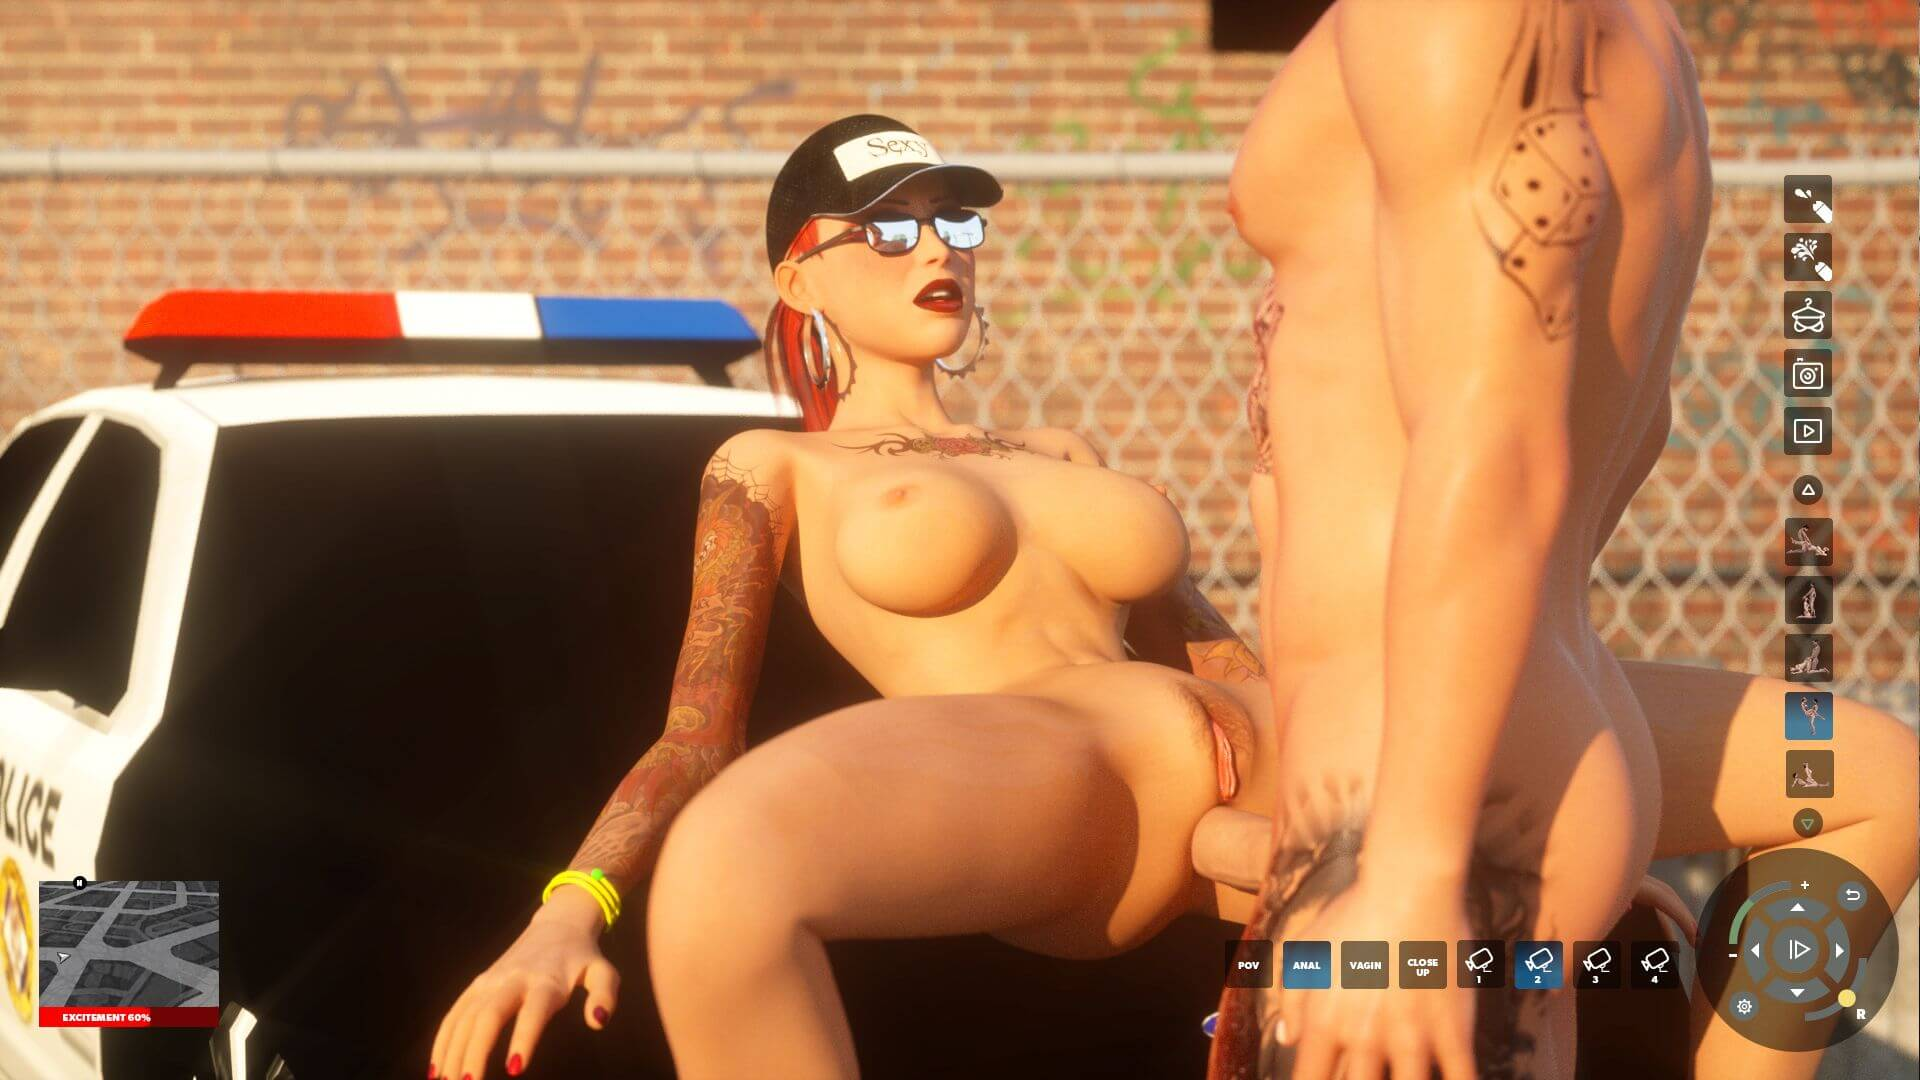 Downloads games gta sex hentai xxx erotica images